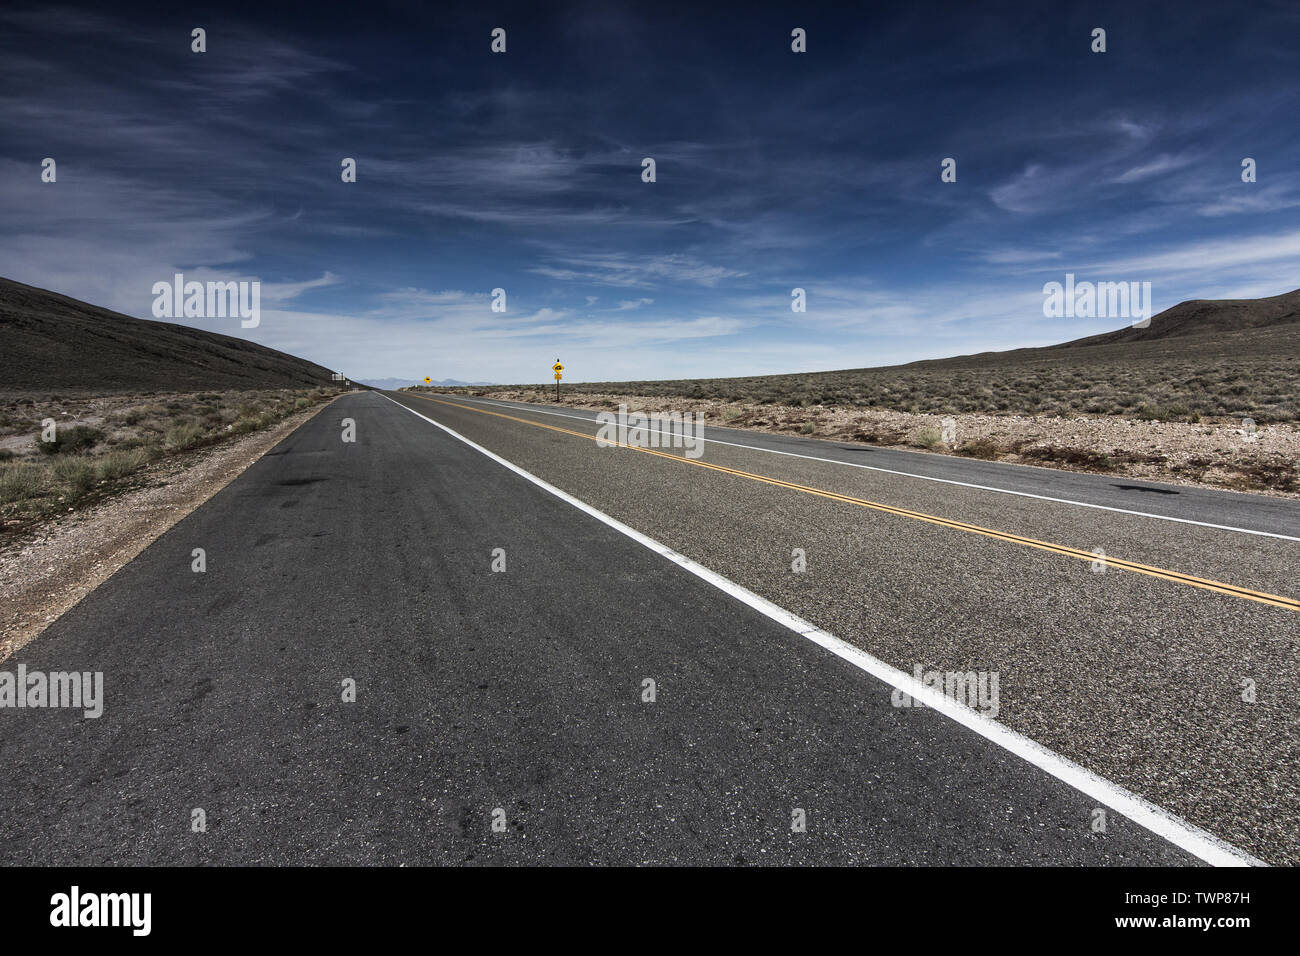 Highway through Death Valley at Towne Pass. Stock Photo